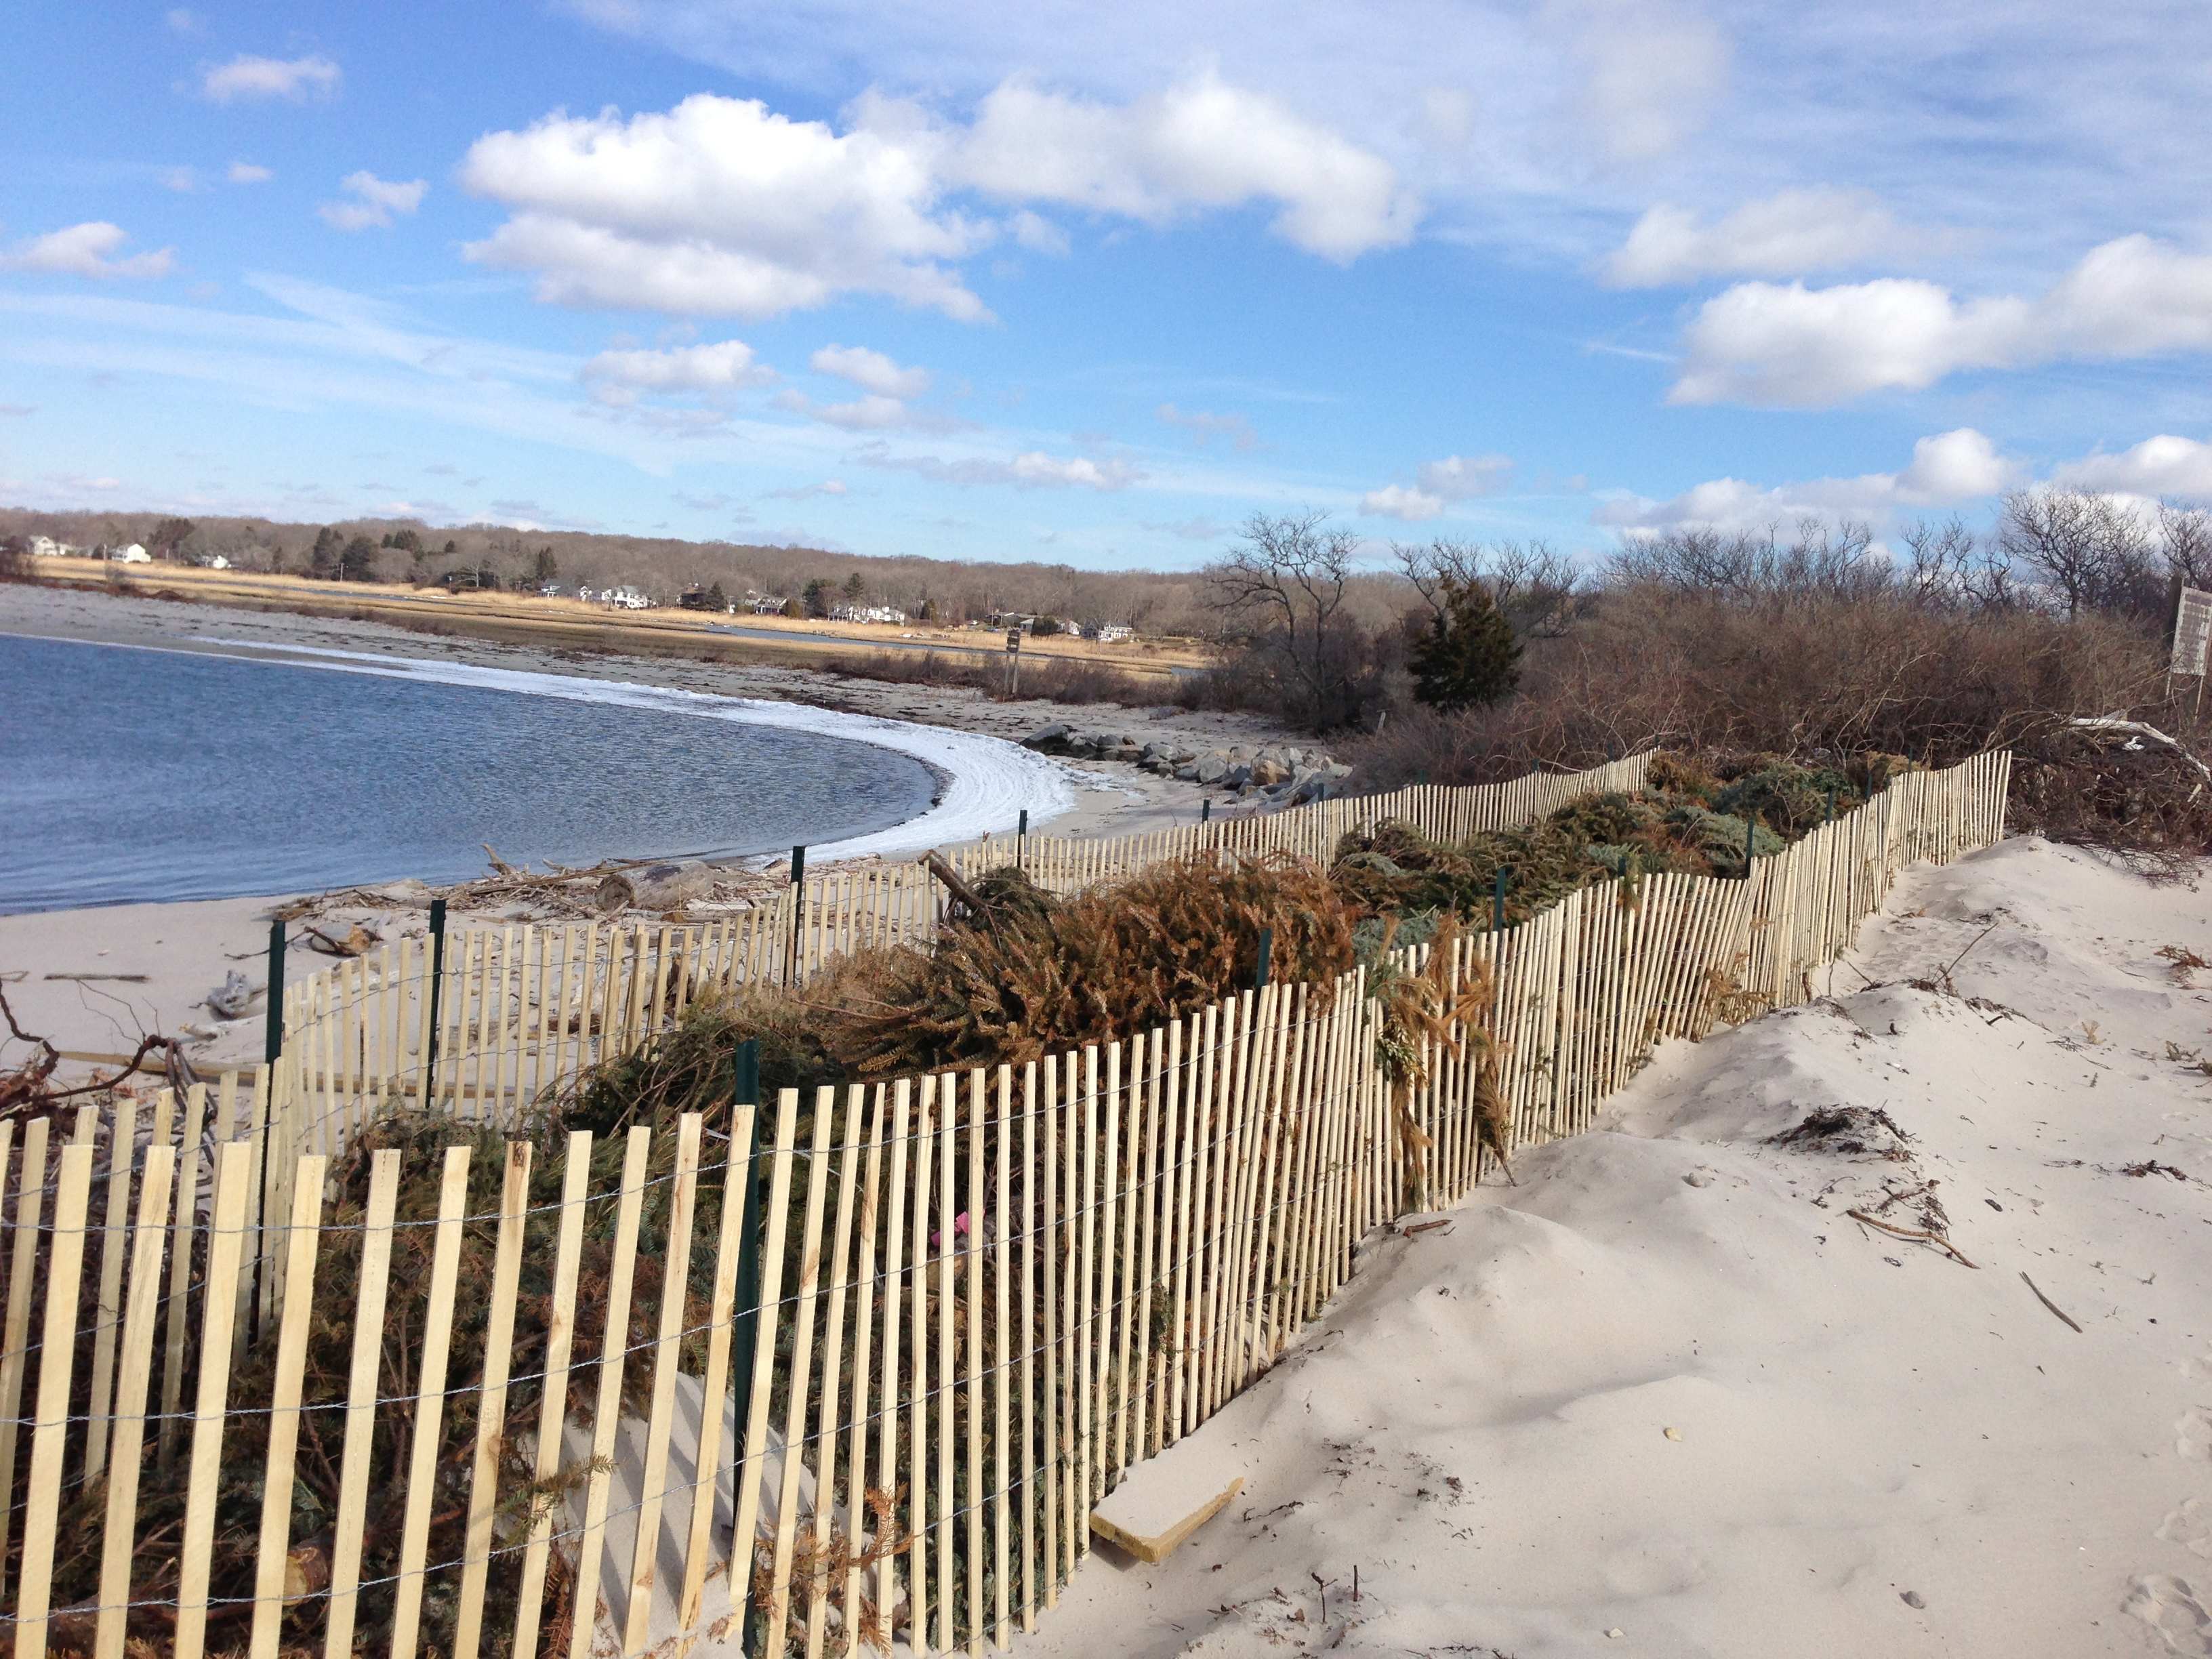 Use of Christmas trees on dune at Old Black Point Beach.